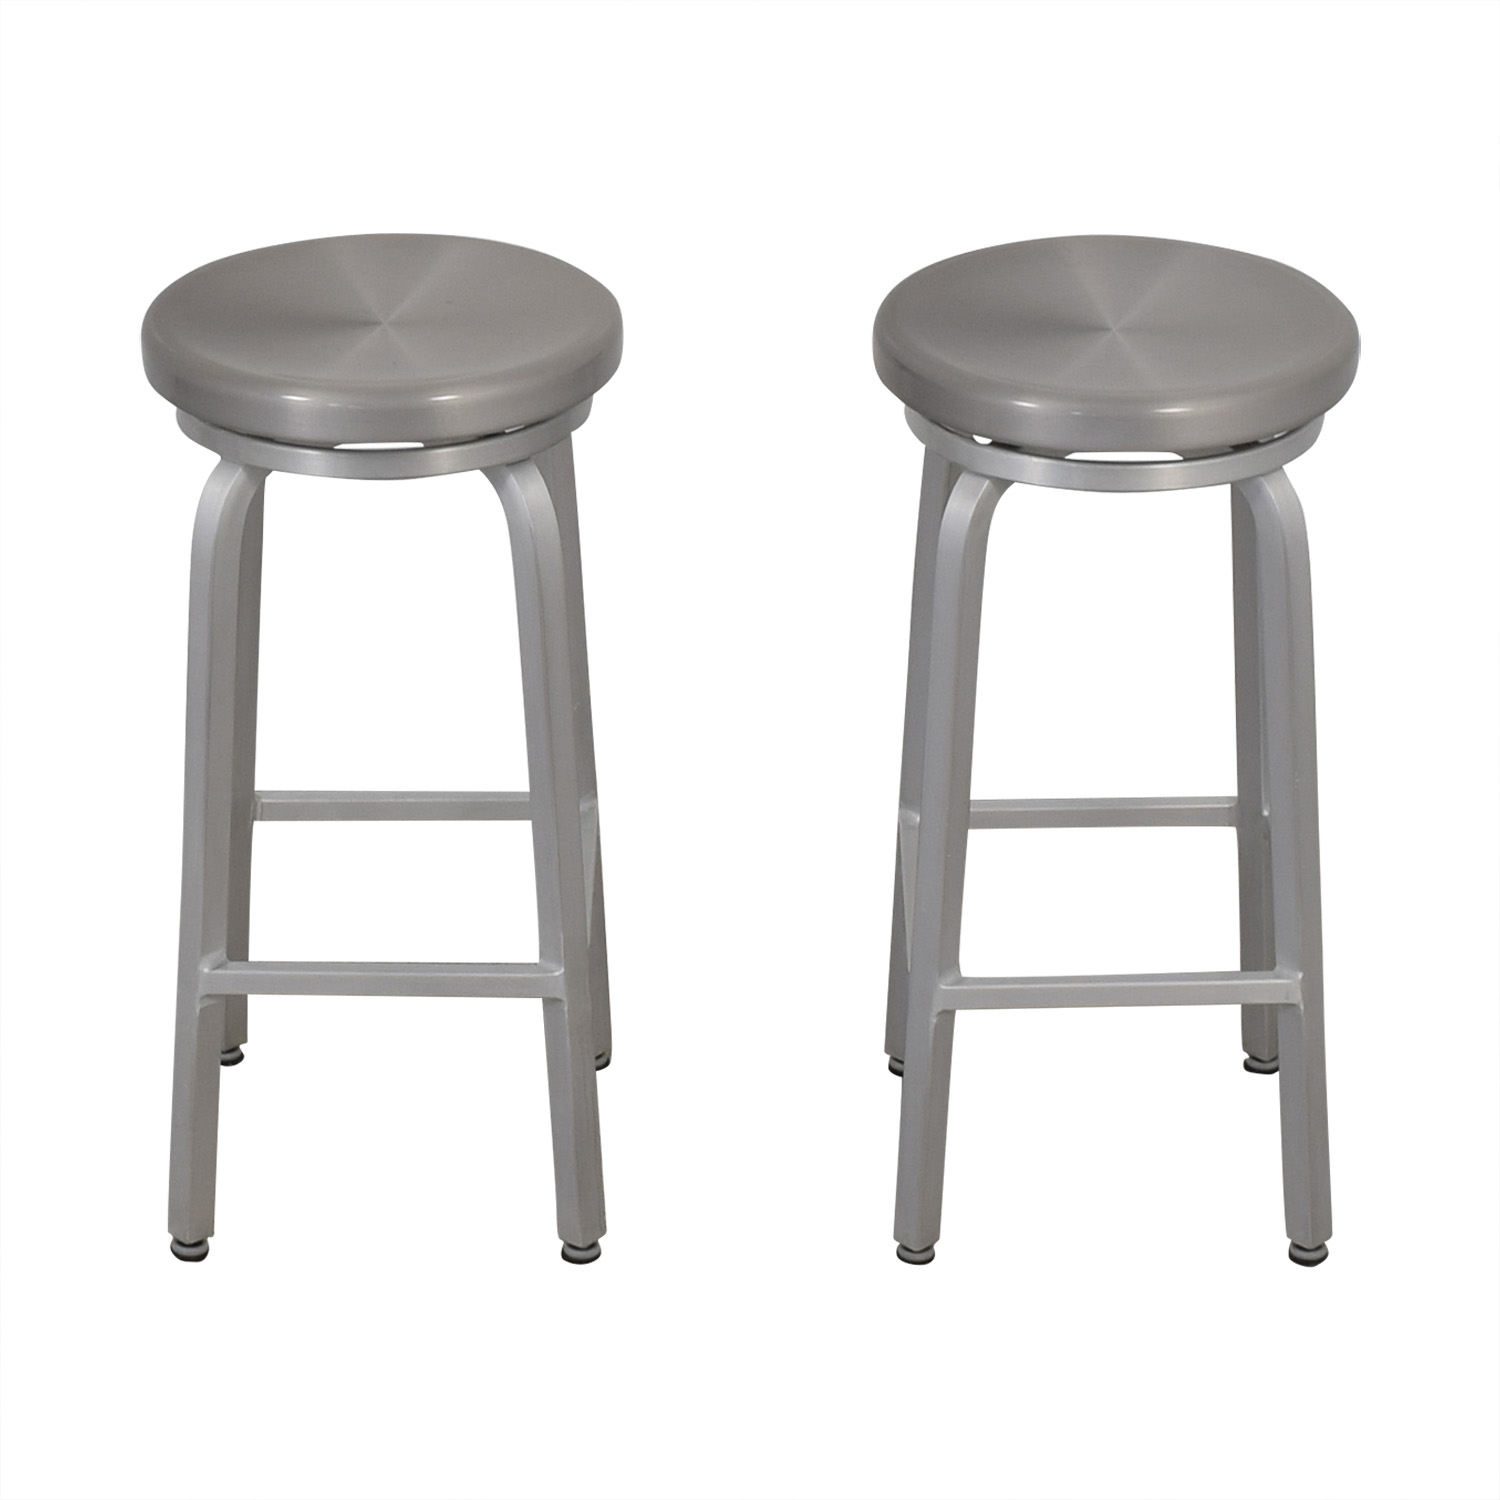 Crate & Barrel Crate & Barrel Stainless Steel Stools used